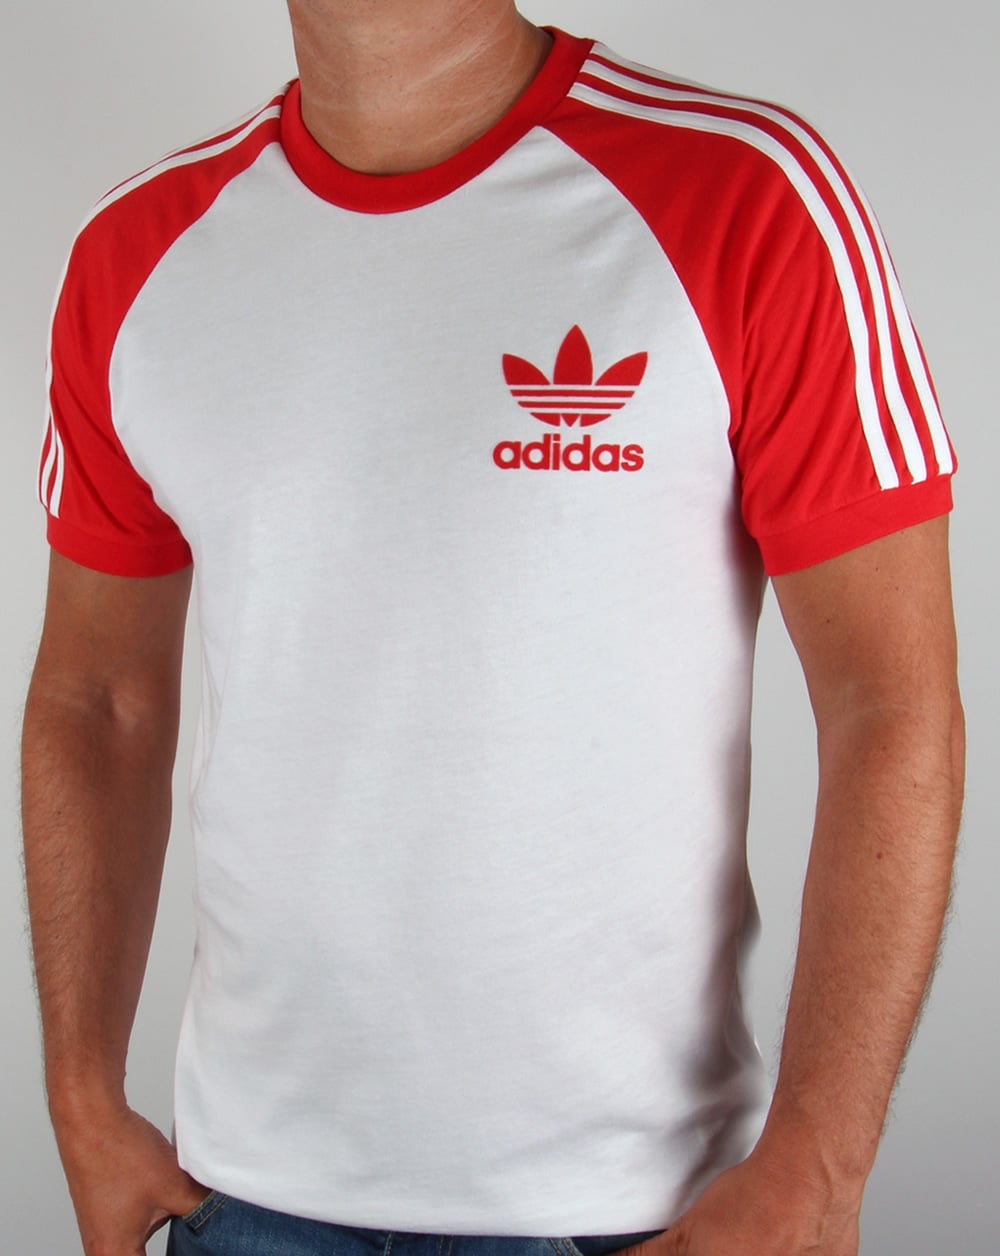 adidas originals retro 3 stripe t shirt white red california tee. Black Bedroom Furniture Sets. Home Design Ideas